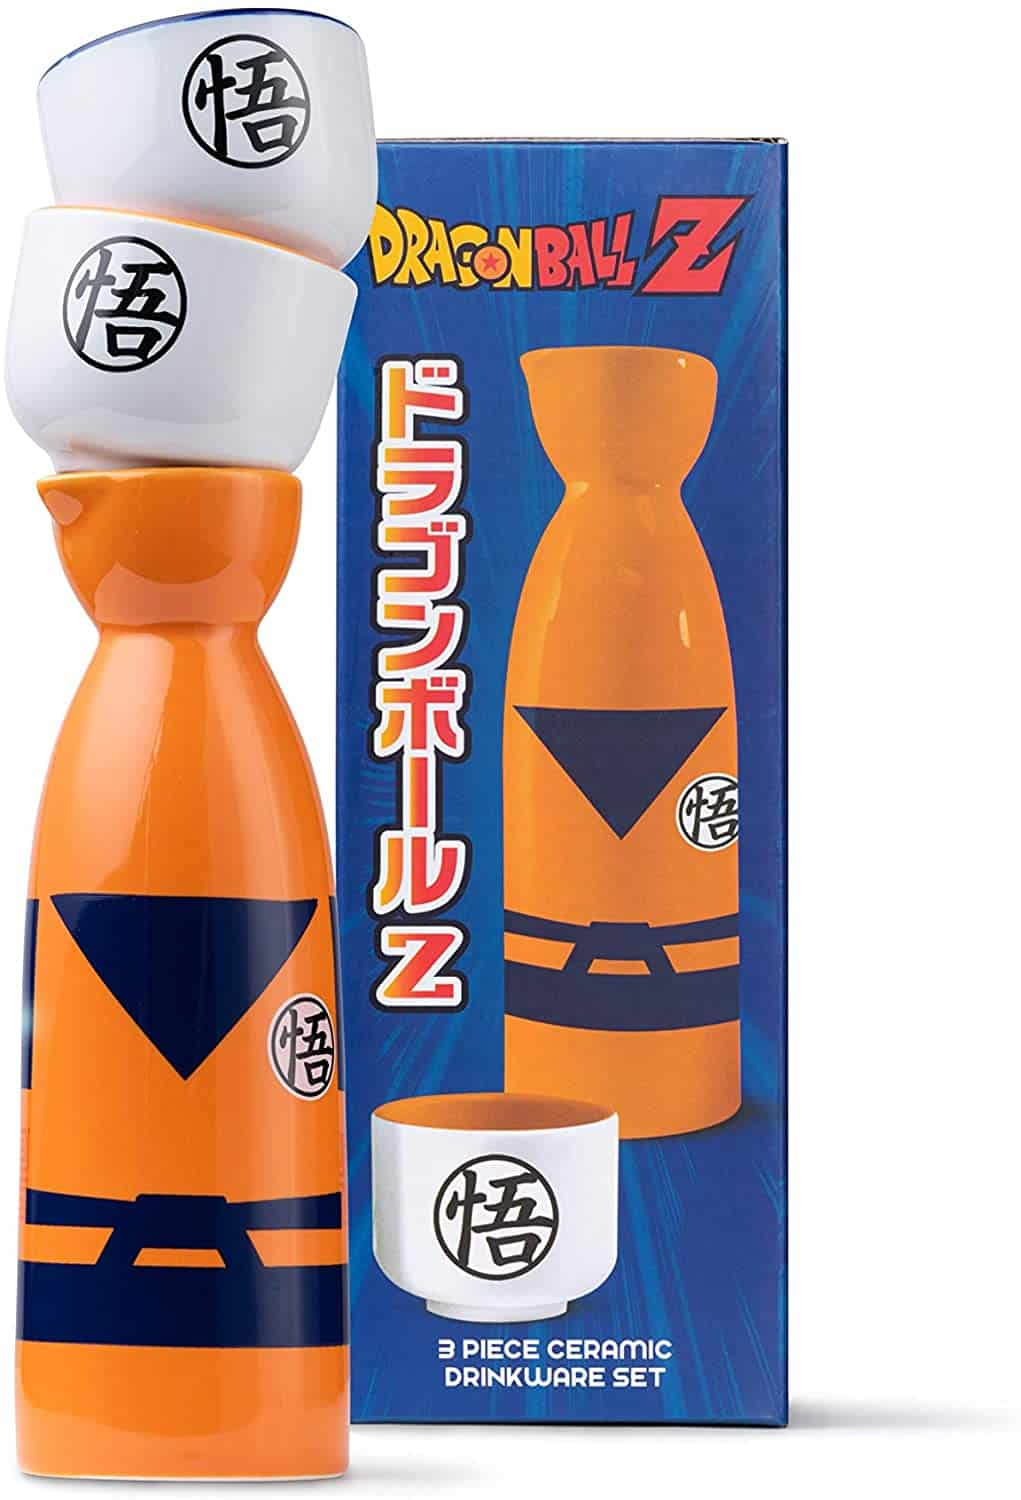 Dragon Ball Z Sake Set is one of the best gift you can give for adults. This ceramic sake set will surely make them happy.